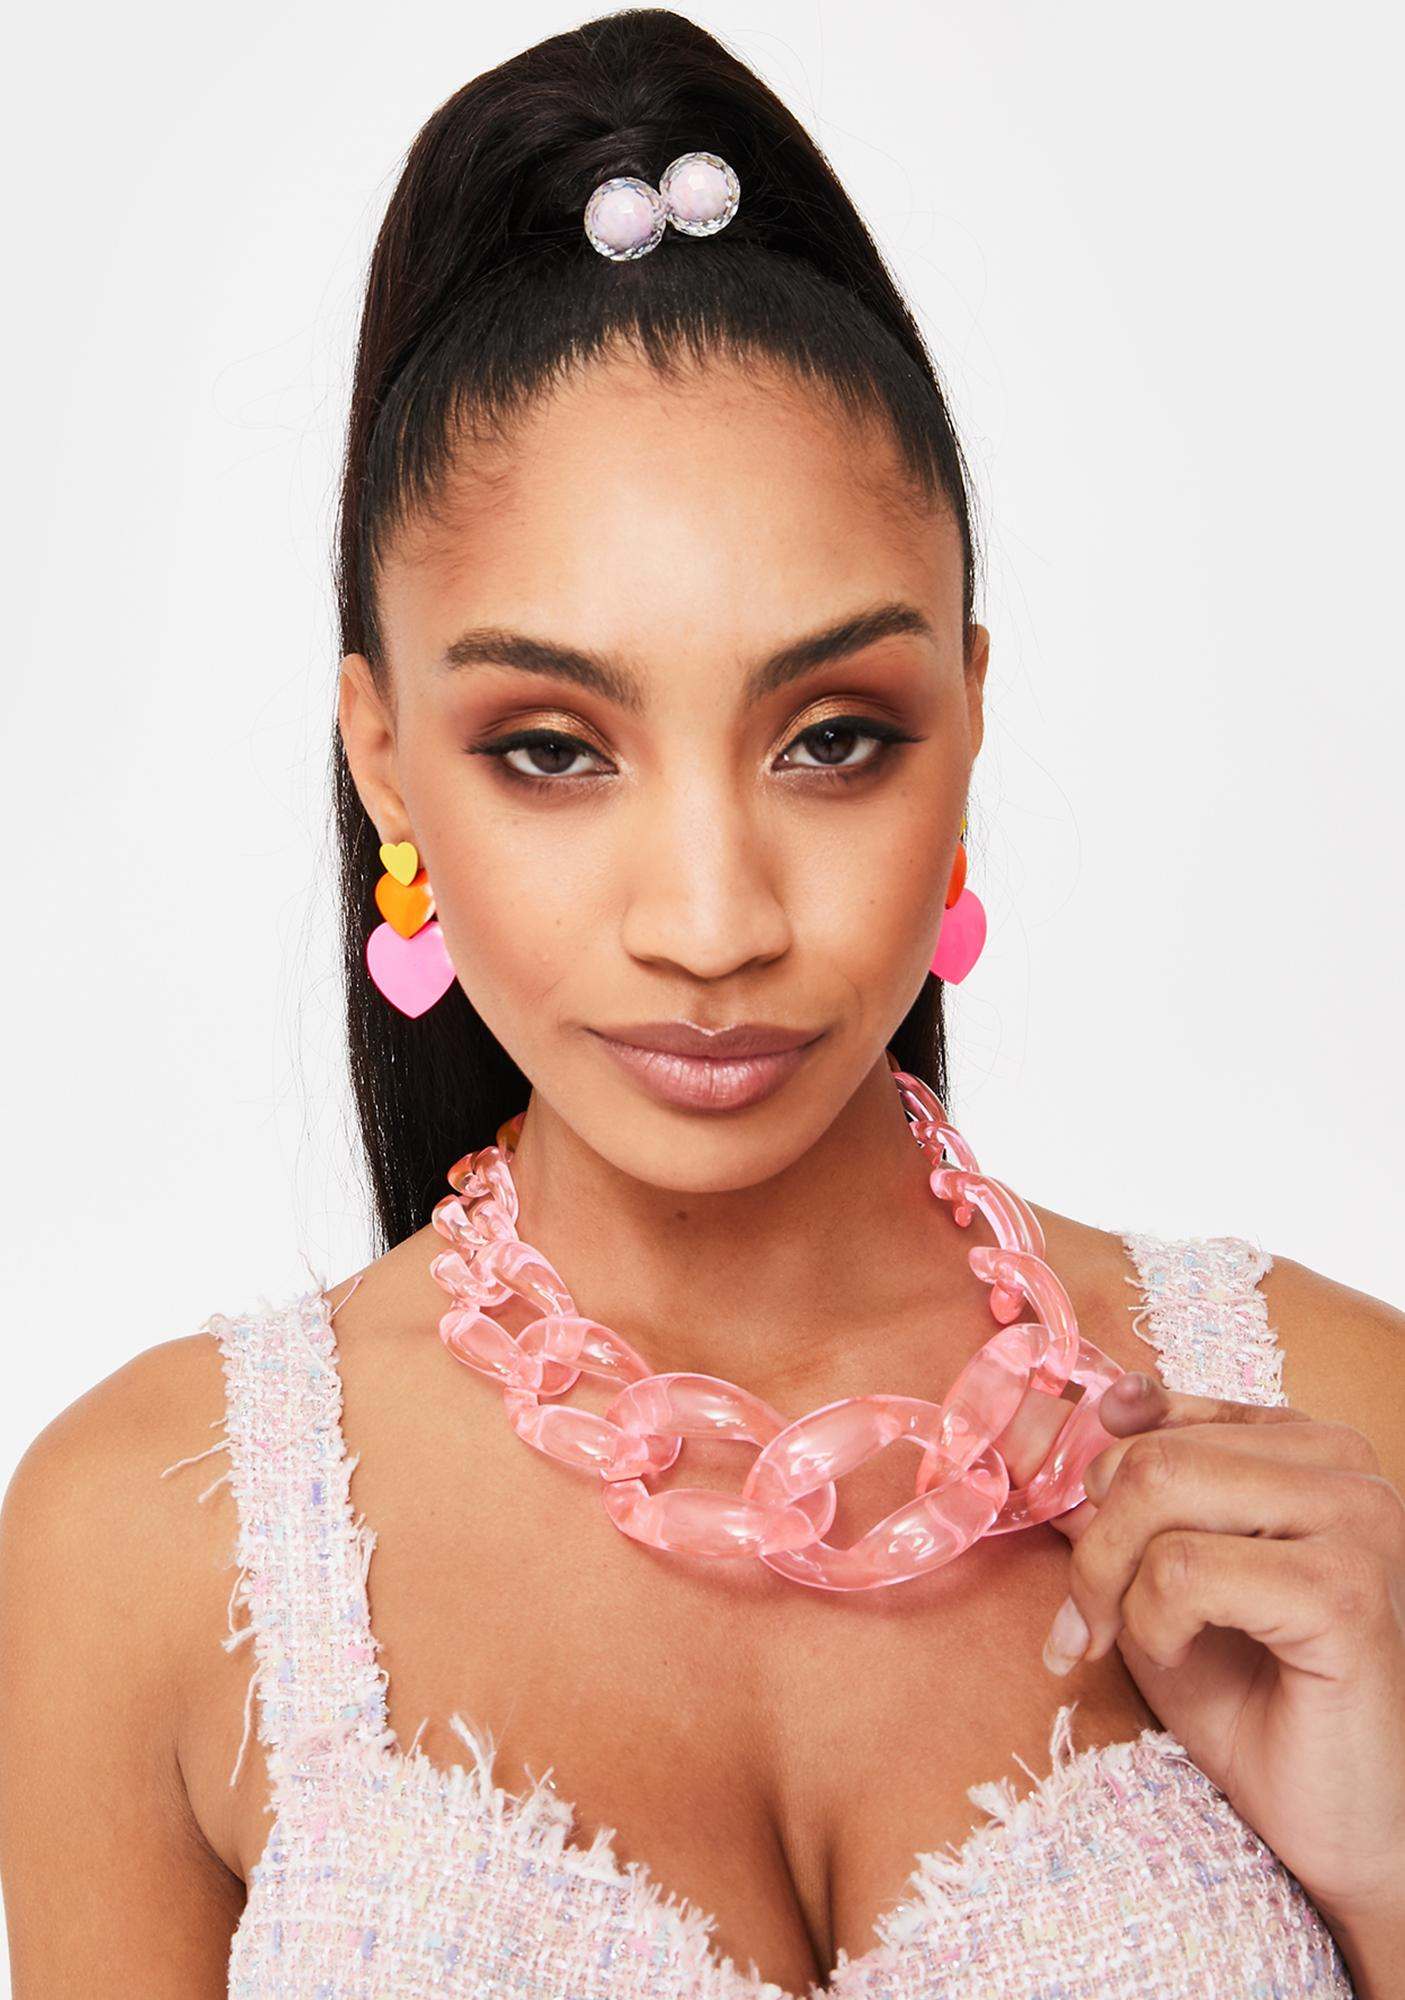 Baby Hustle N' Glow Chain Necklace